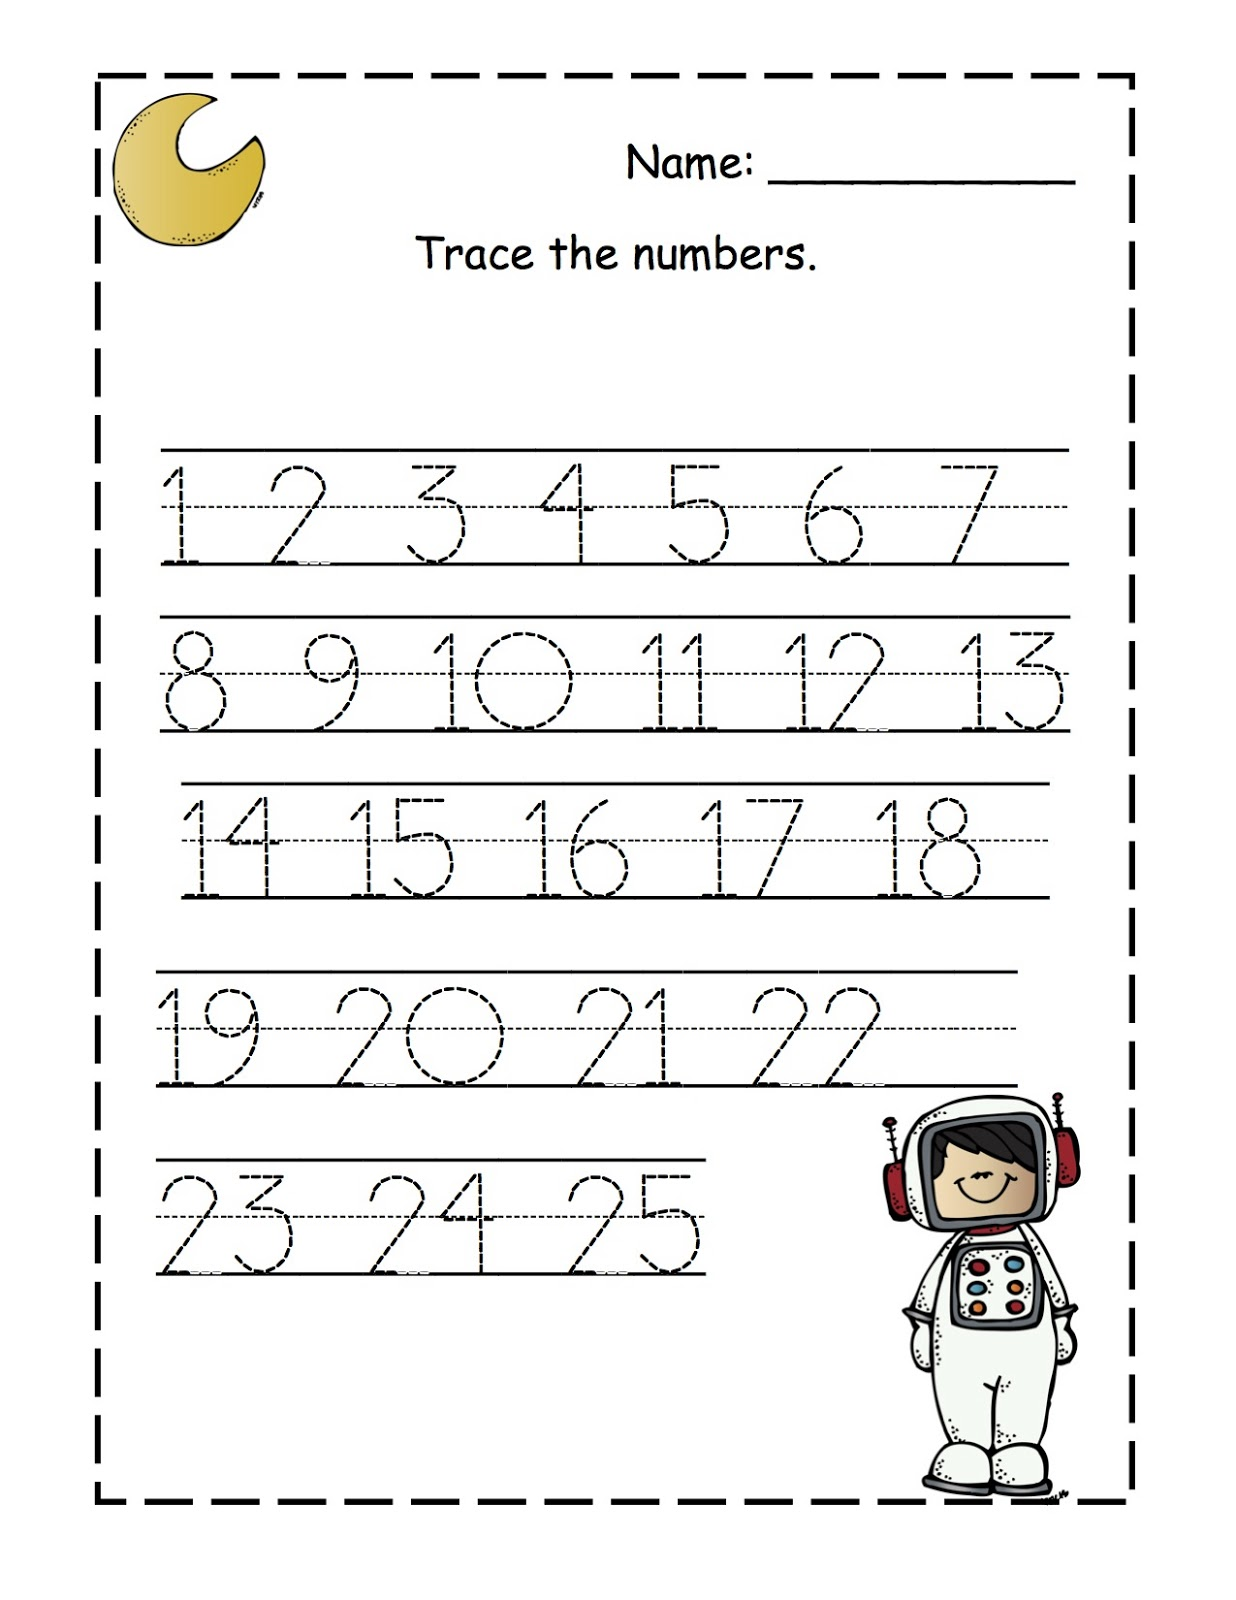 Printables Traceable Numbers Worksheets 1 20 Kigose Thousands Of Printable Activities